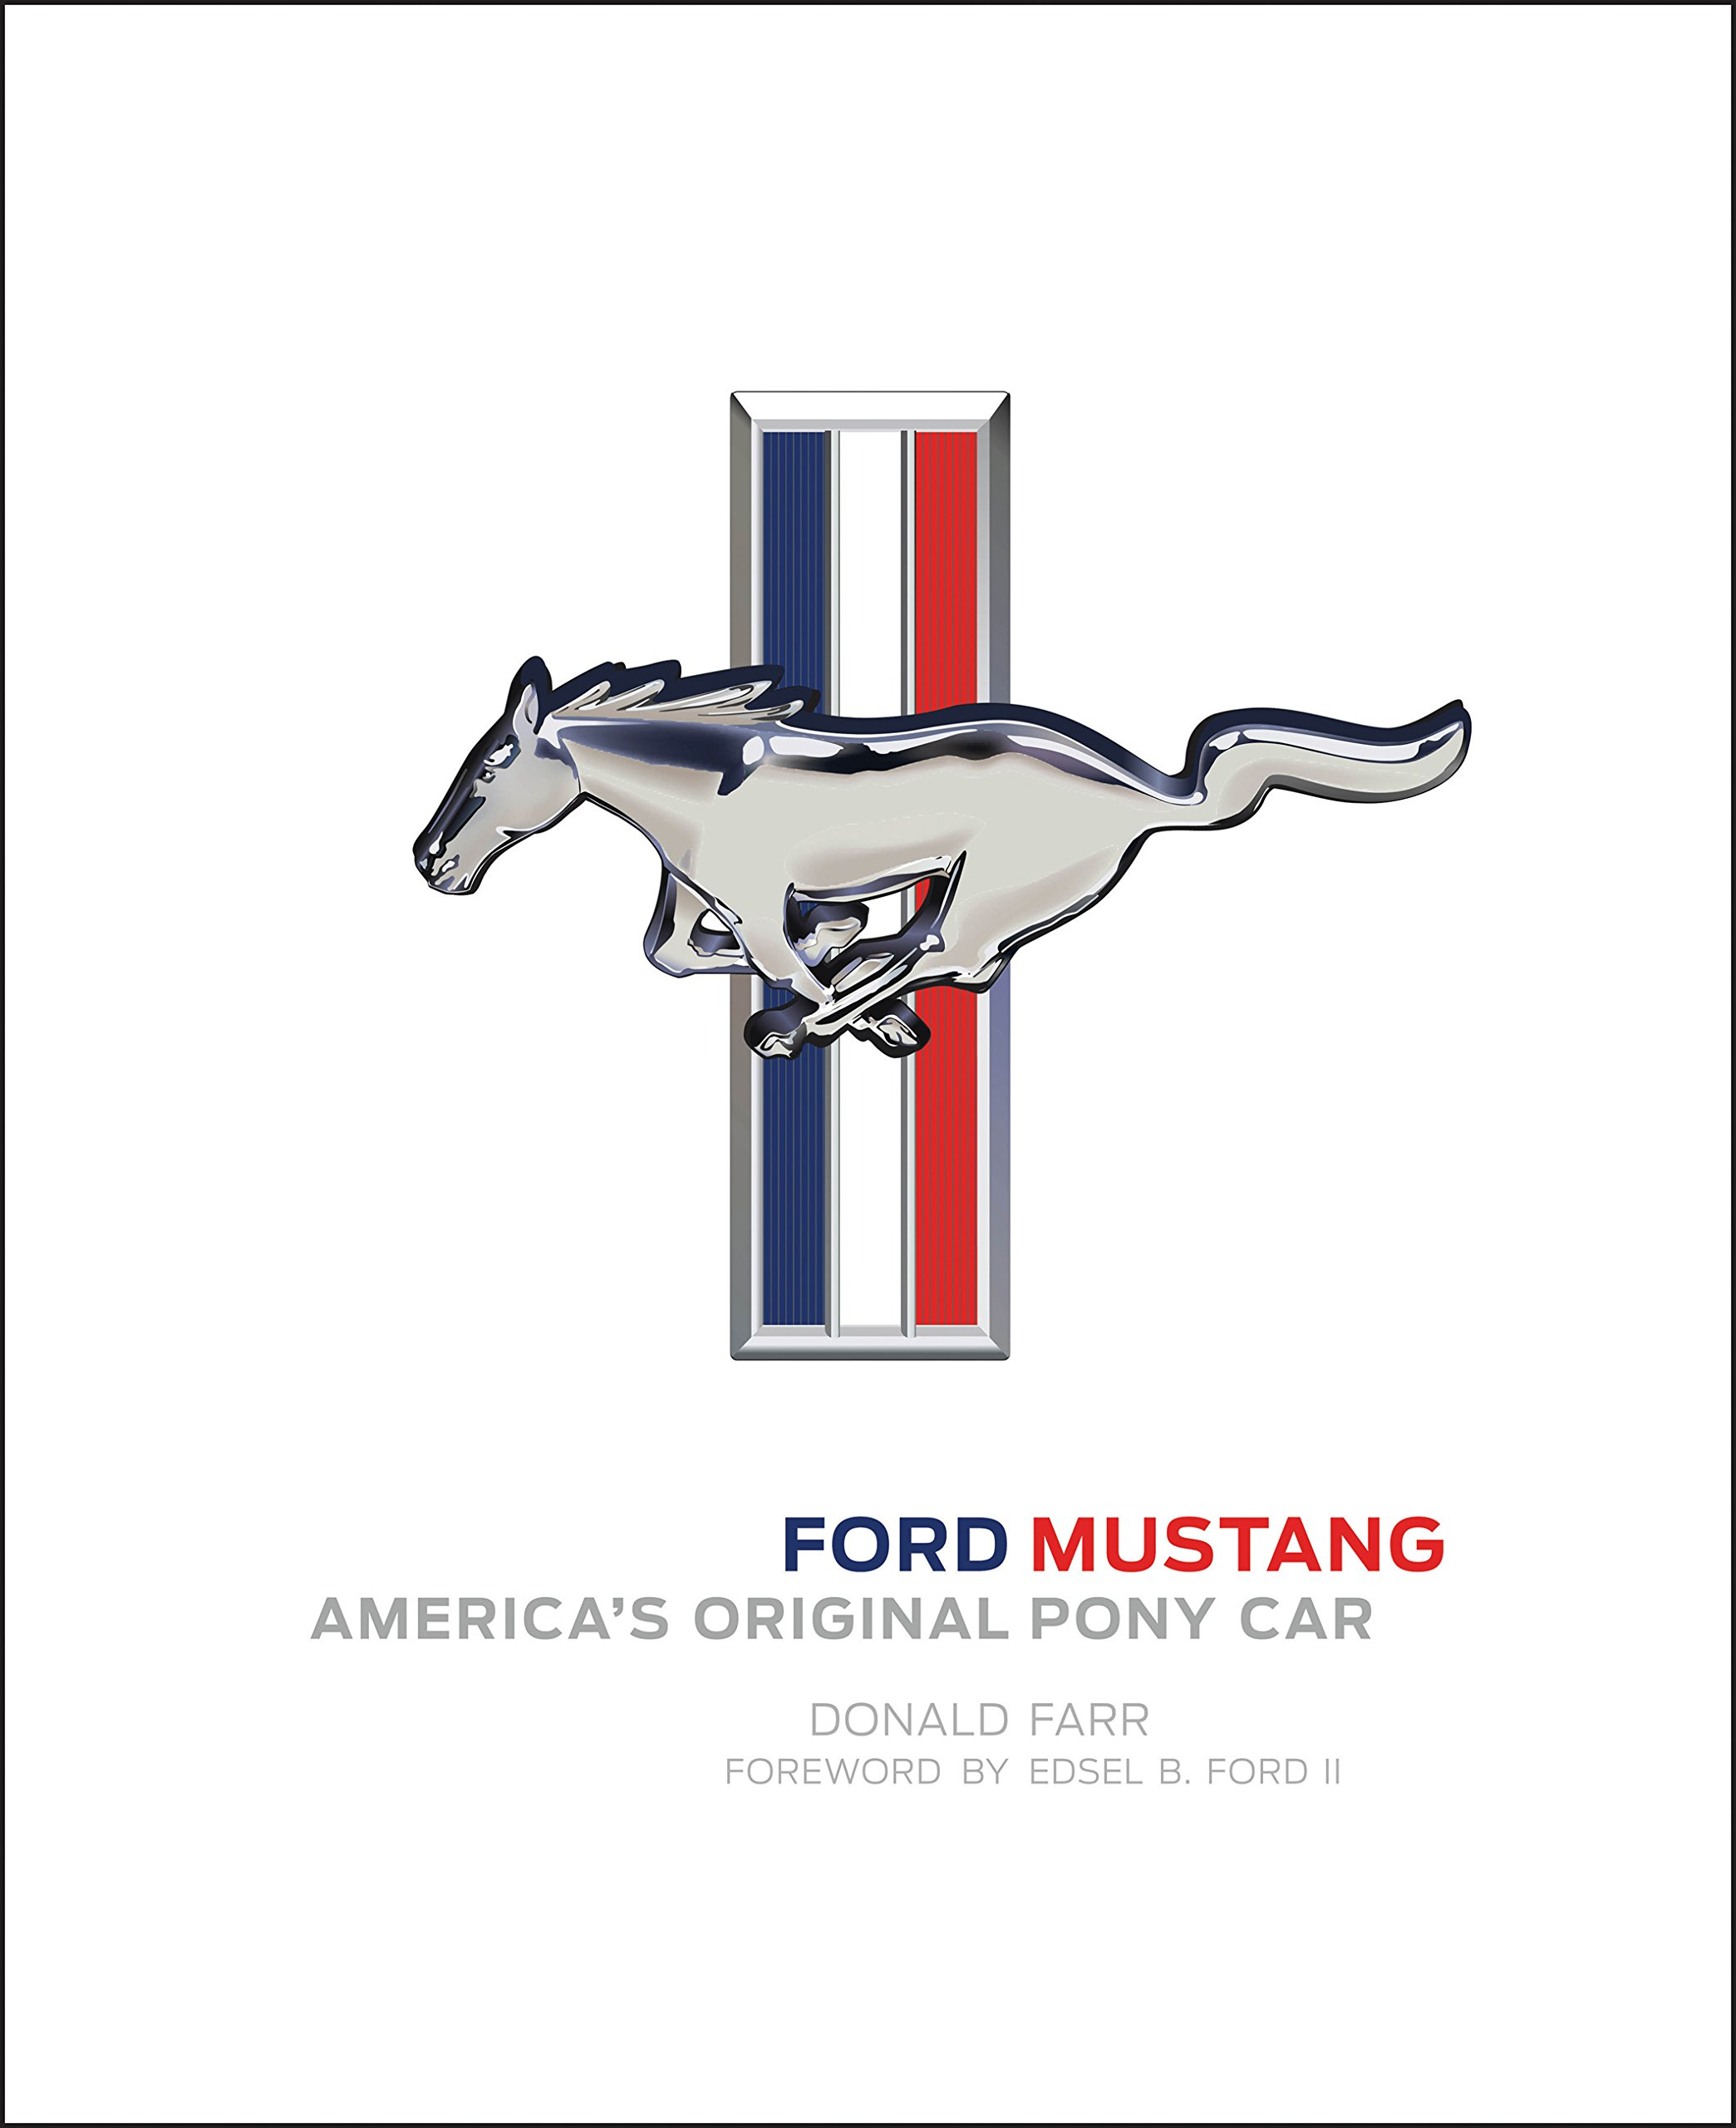 Ford Mustang: America's Original Pony Car PDF